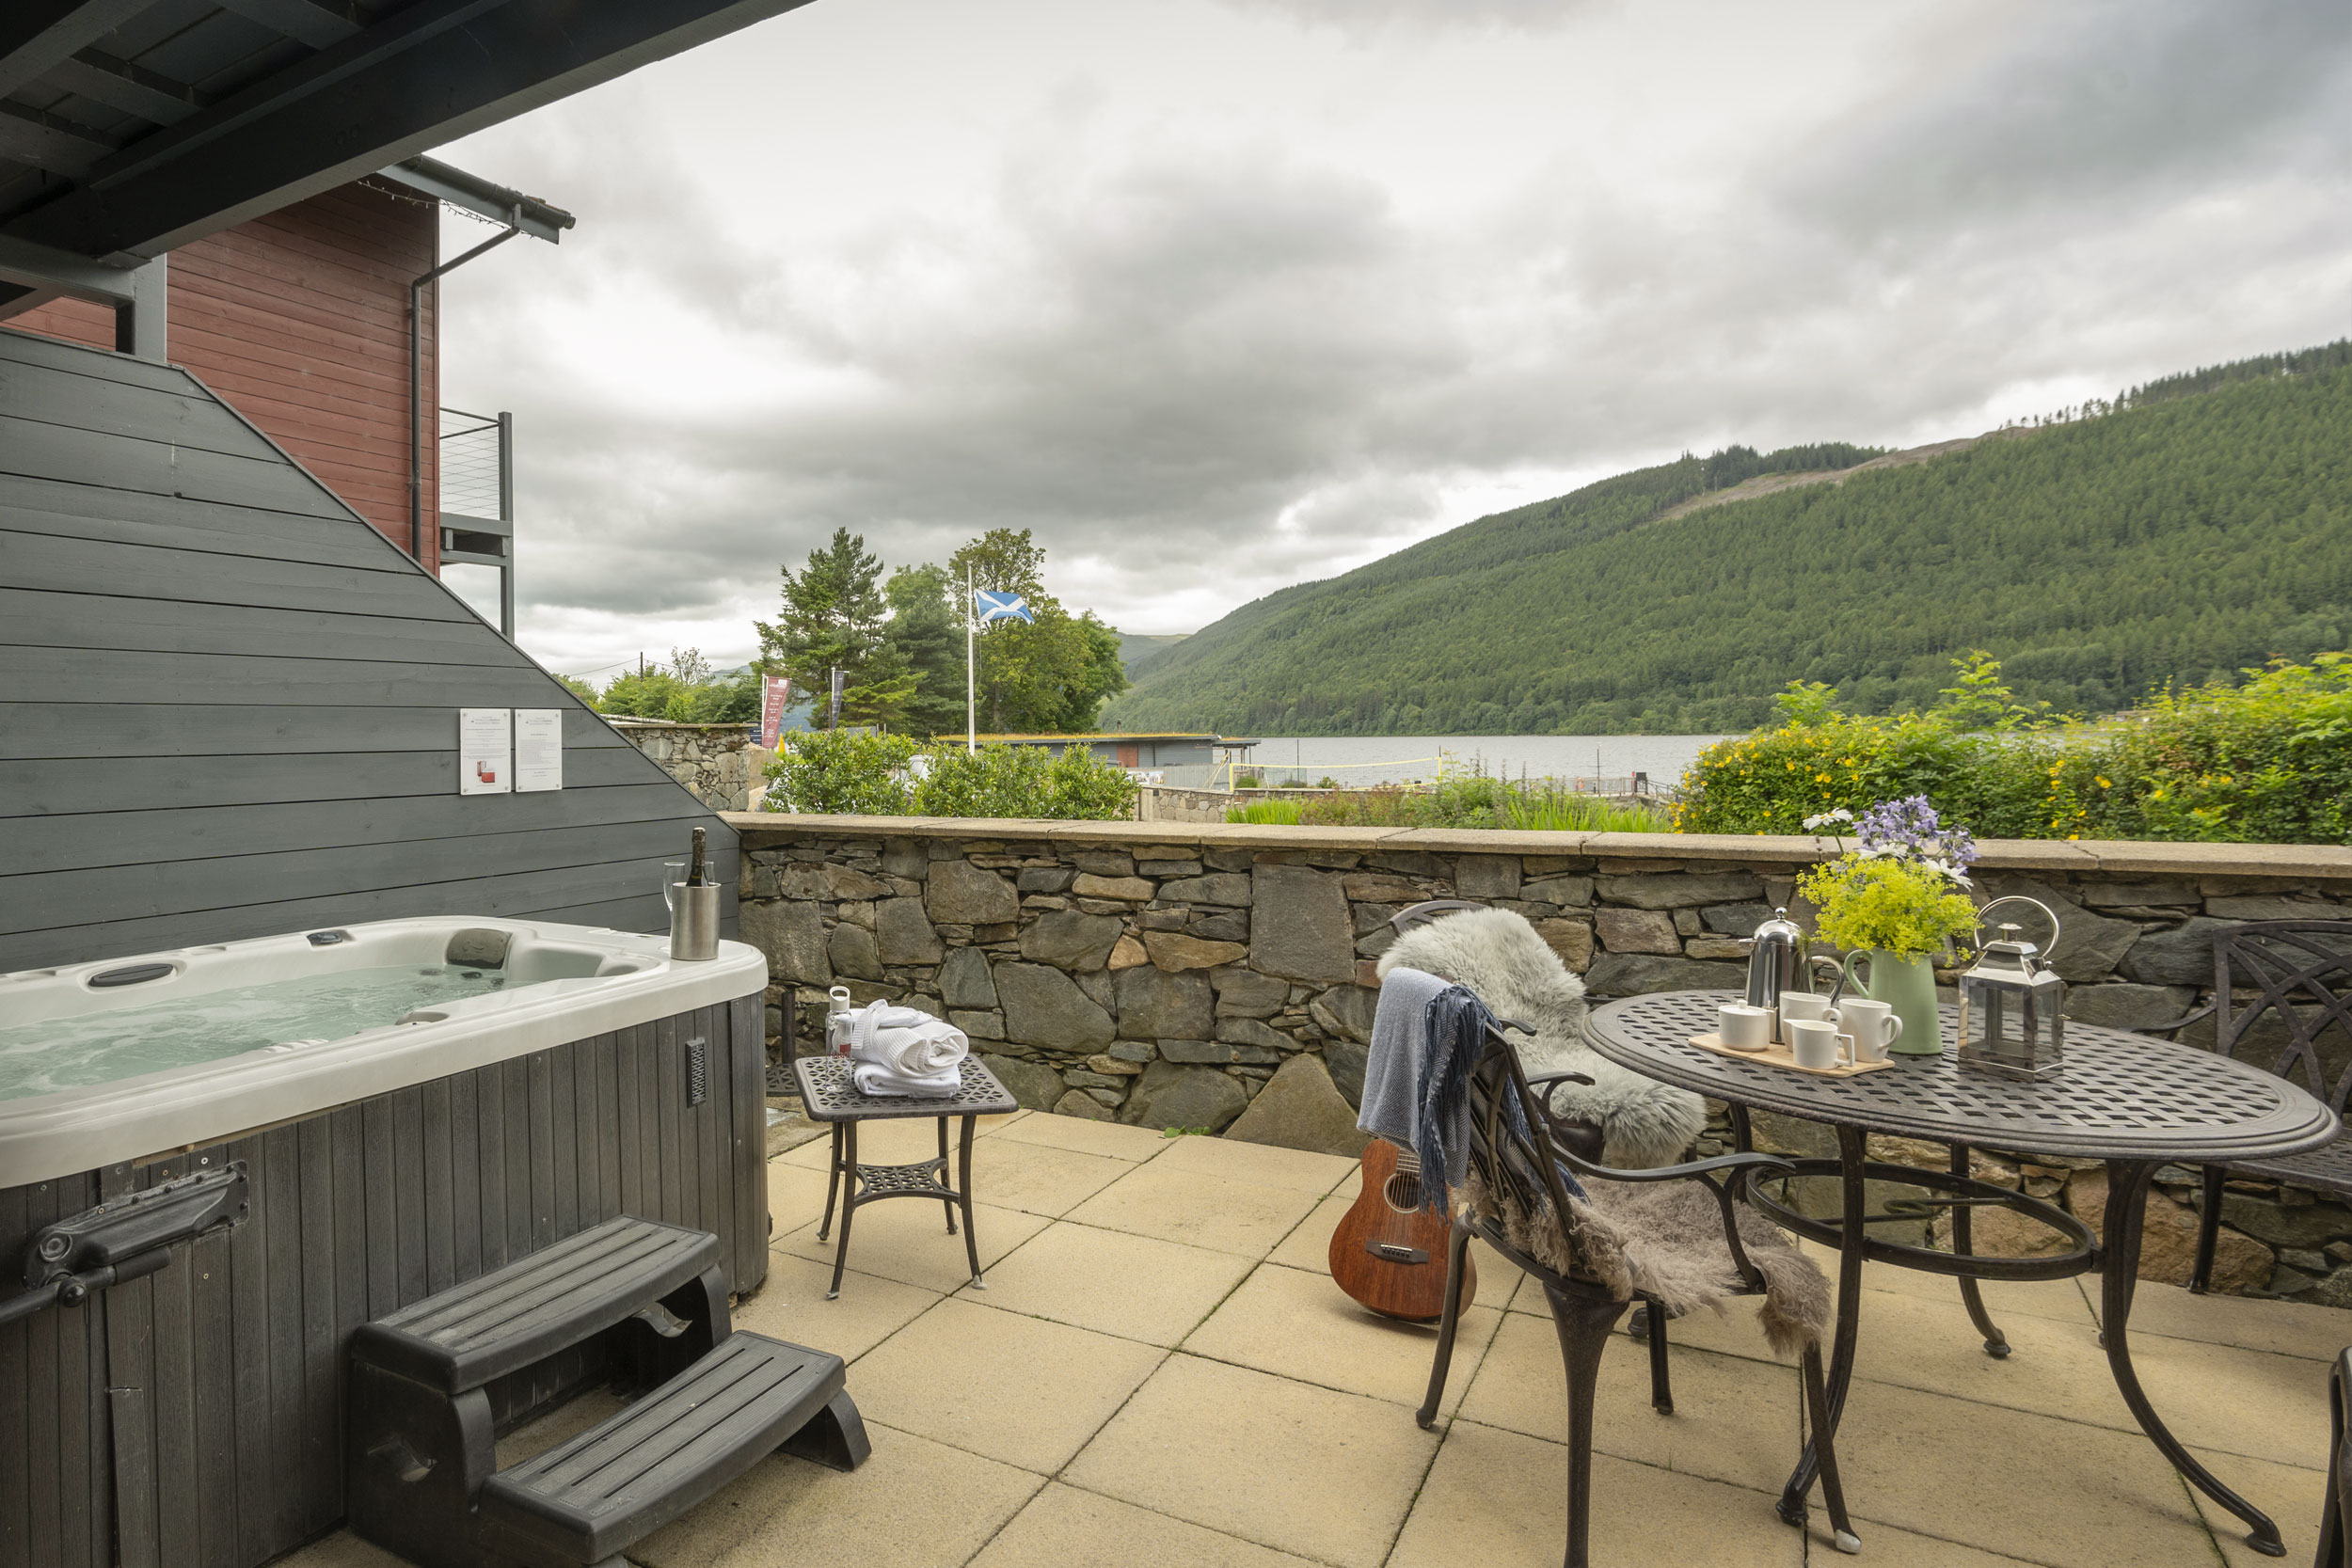 Terrace Seating With Views Across Loch Tay And Forest.